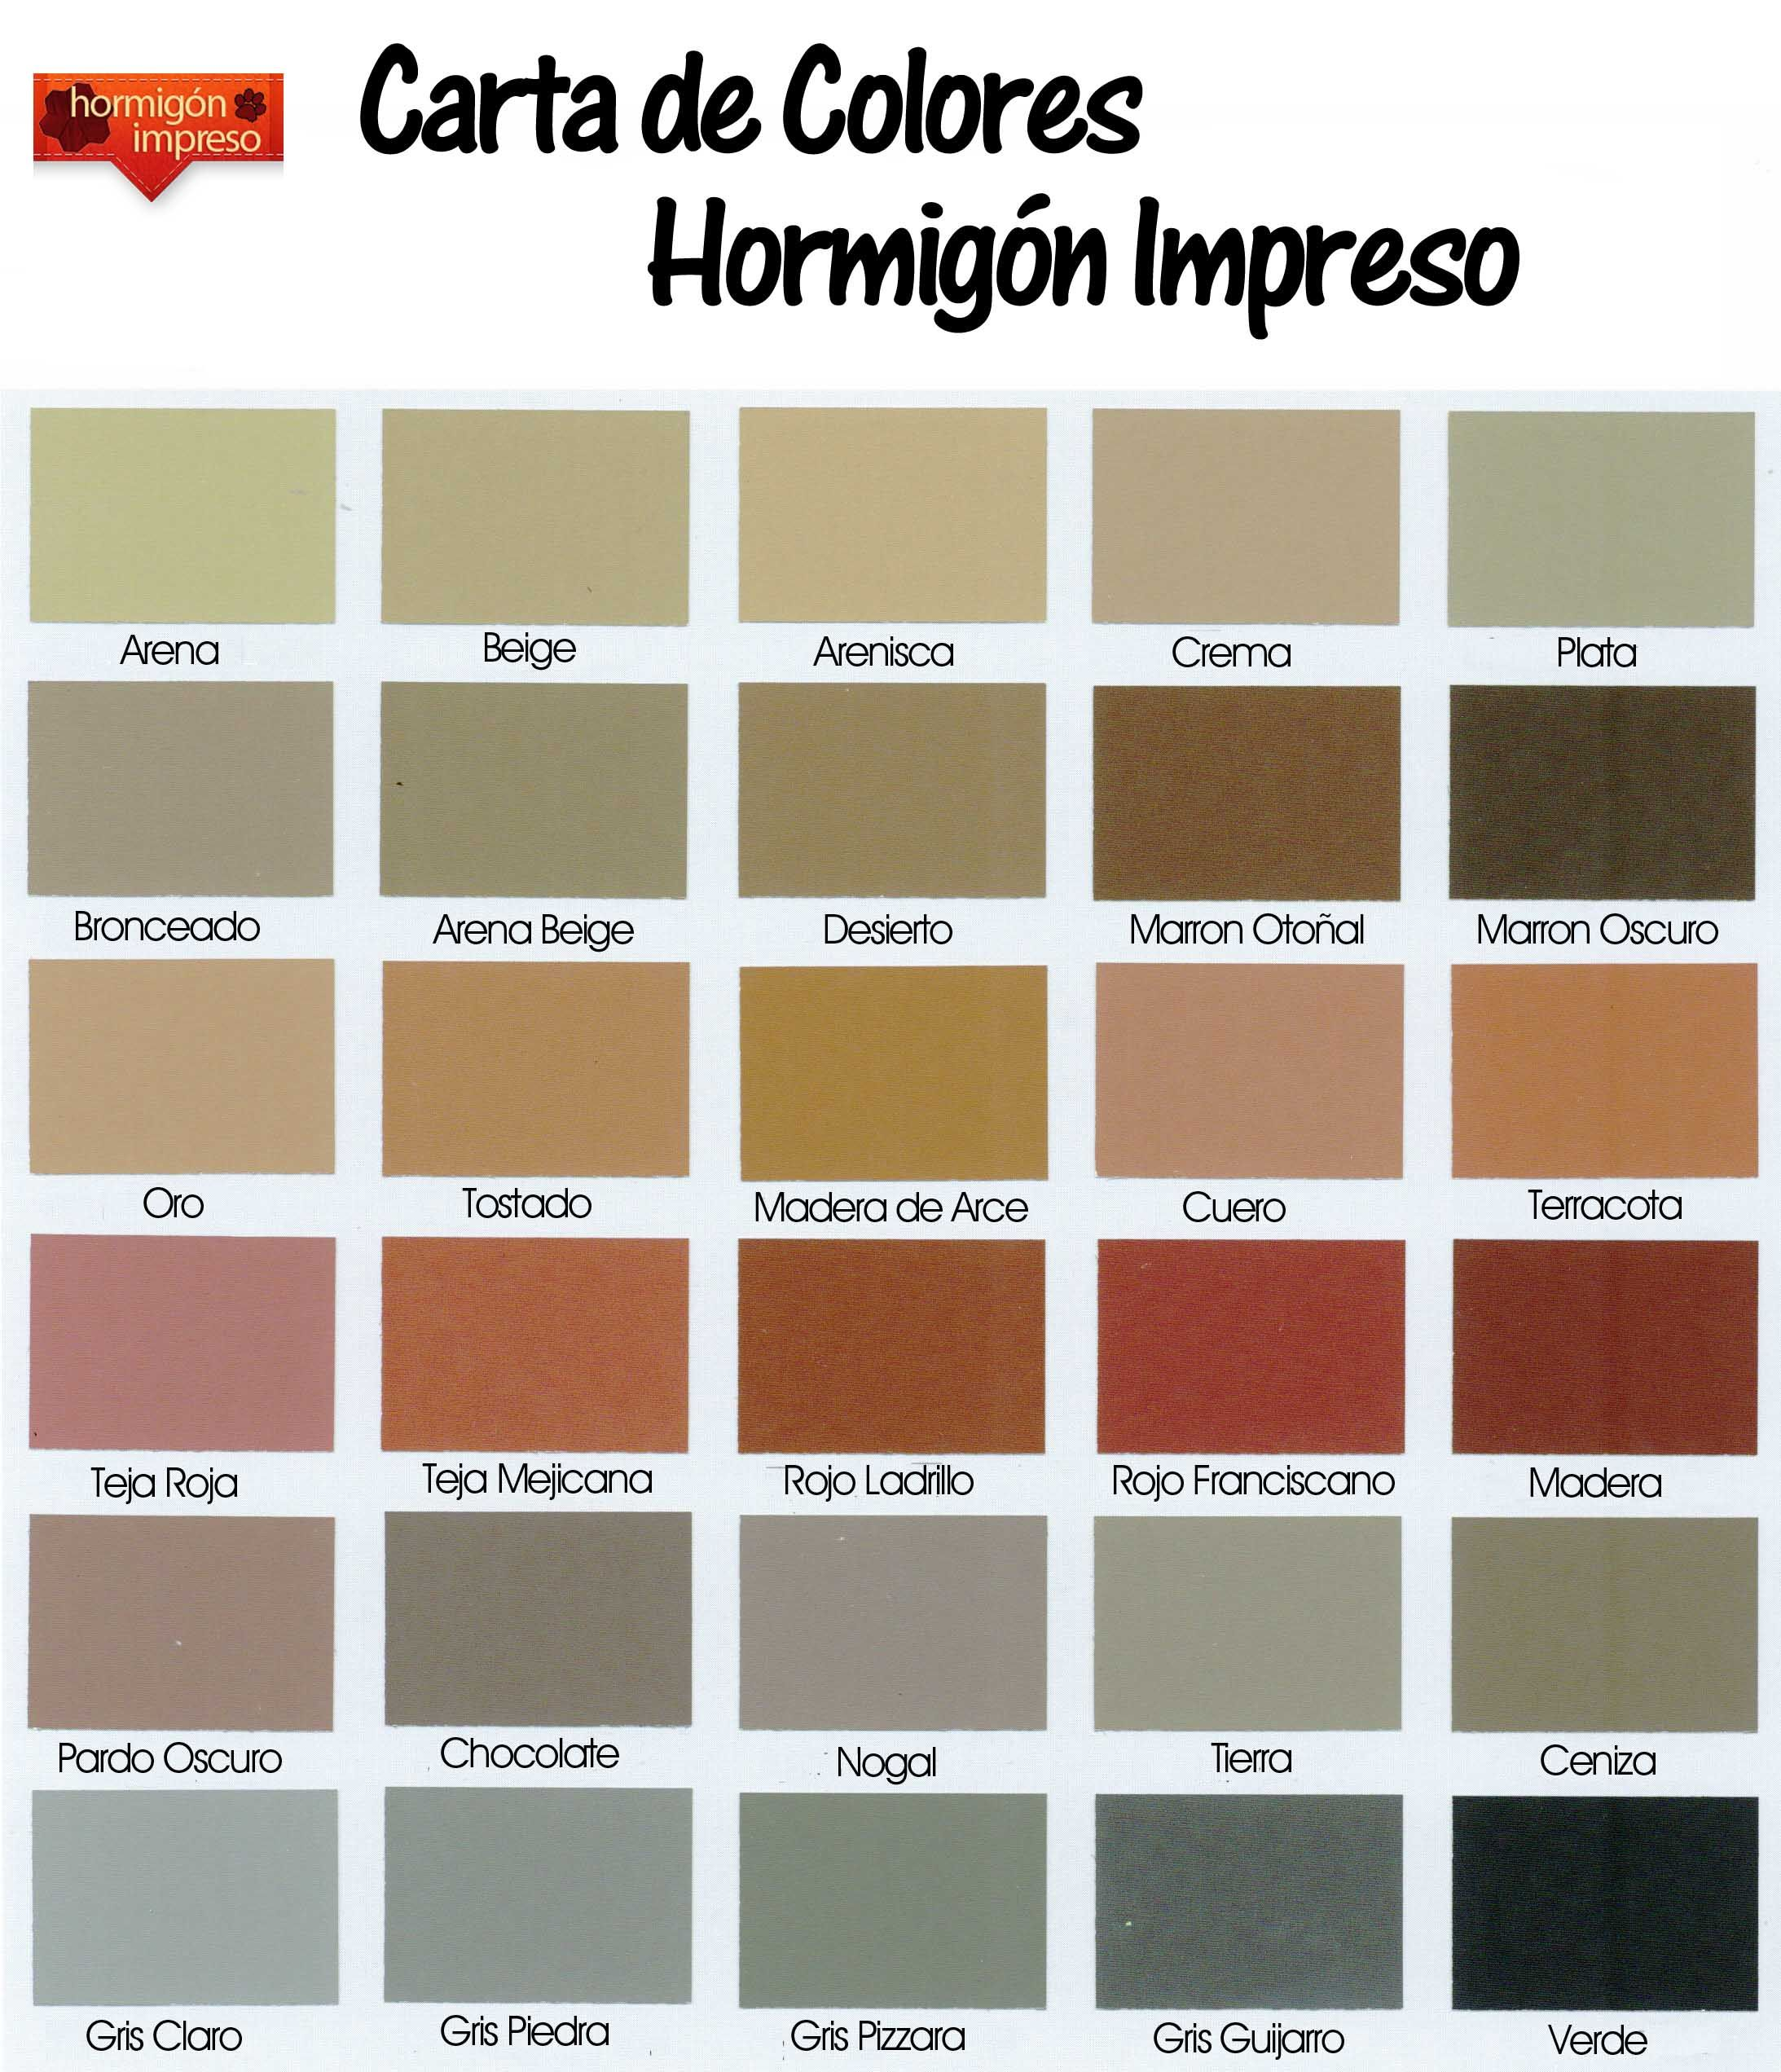 Carta De Colores Hormigon Impreso Courtyard Pinterest Carta  ~ Catalogo De Pinturas Para Paredes